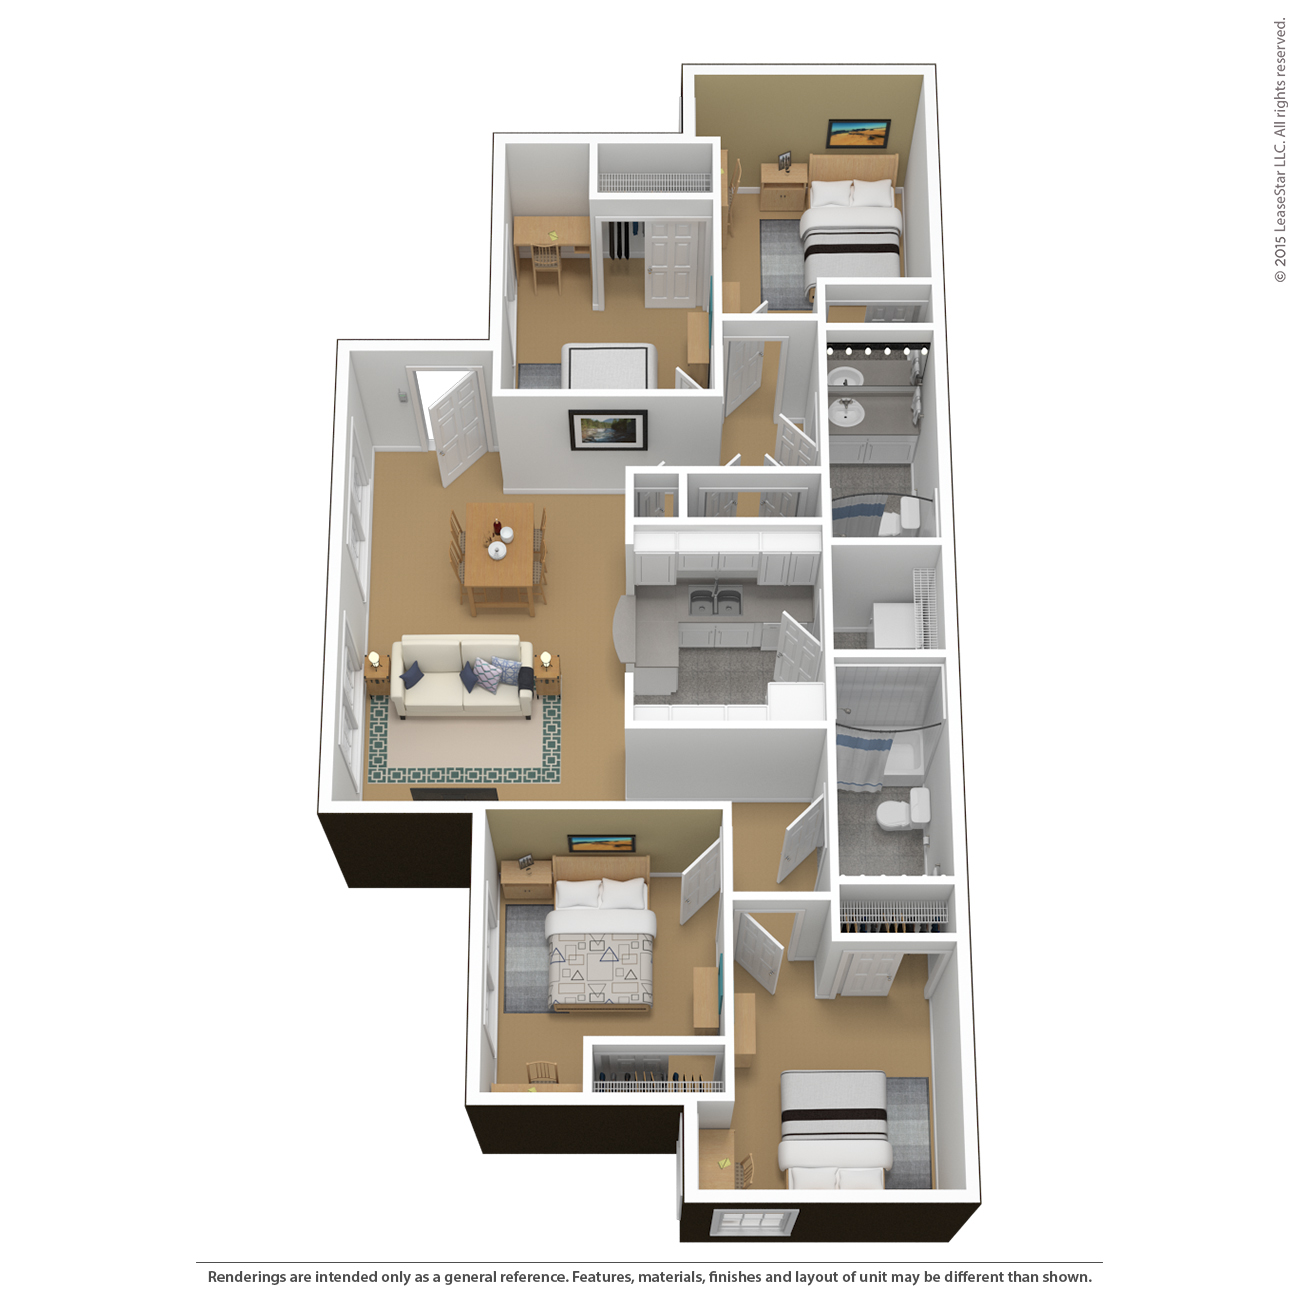 CTY 4 Bedroom 2 Bathroom   furnished. Floor Plans   Virtual Tours   The Courtyards